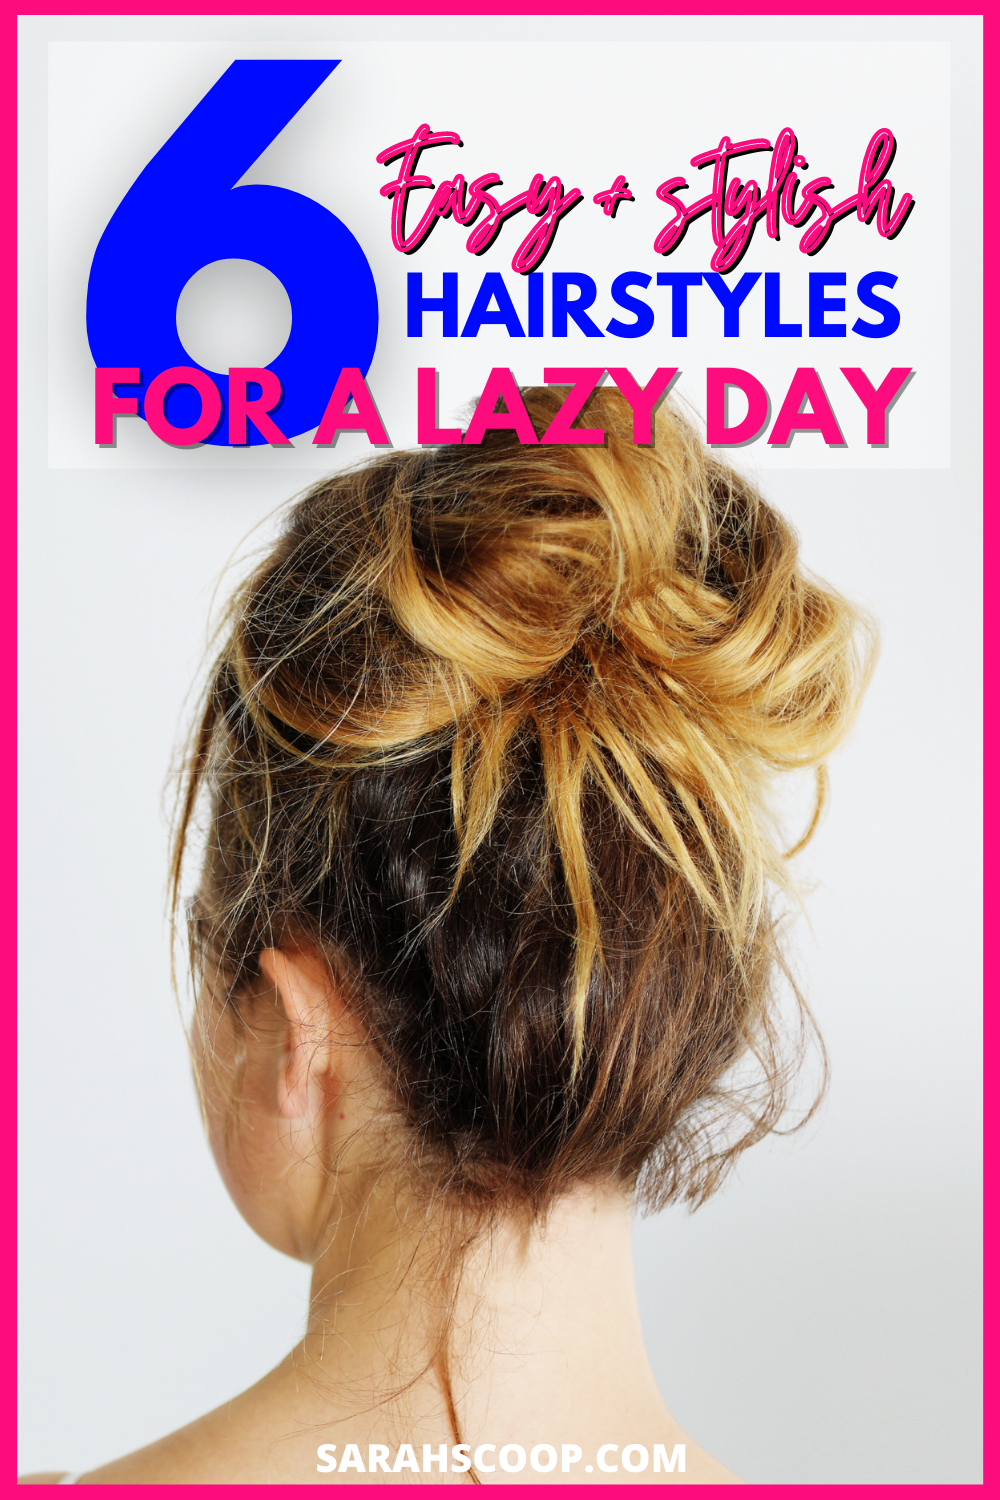 6 Easy & Stylish Hairstyles For a Lazy Day | Sarah Scoop